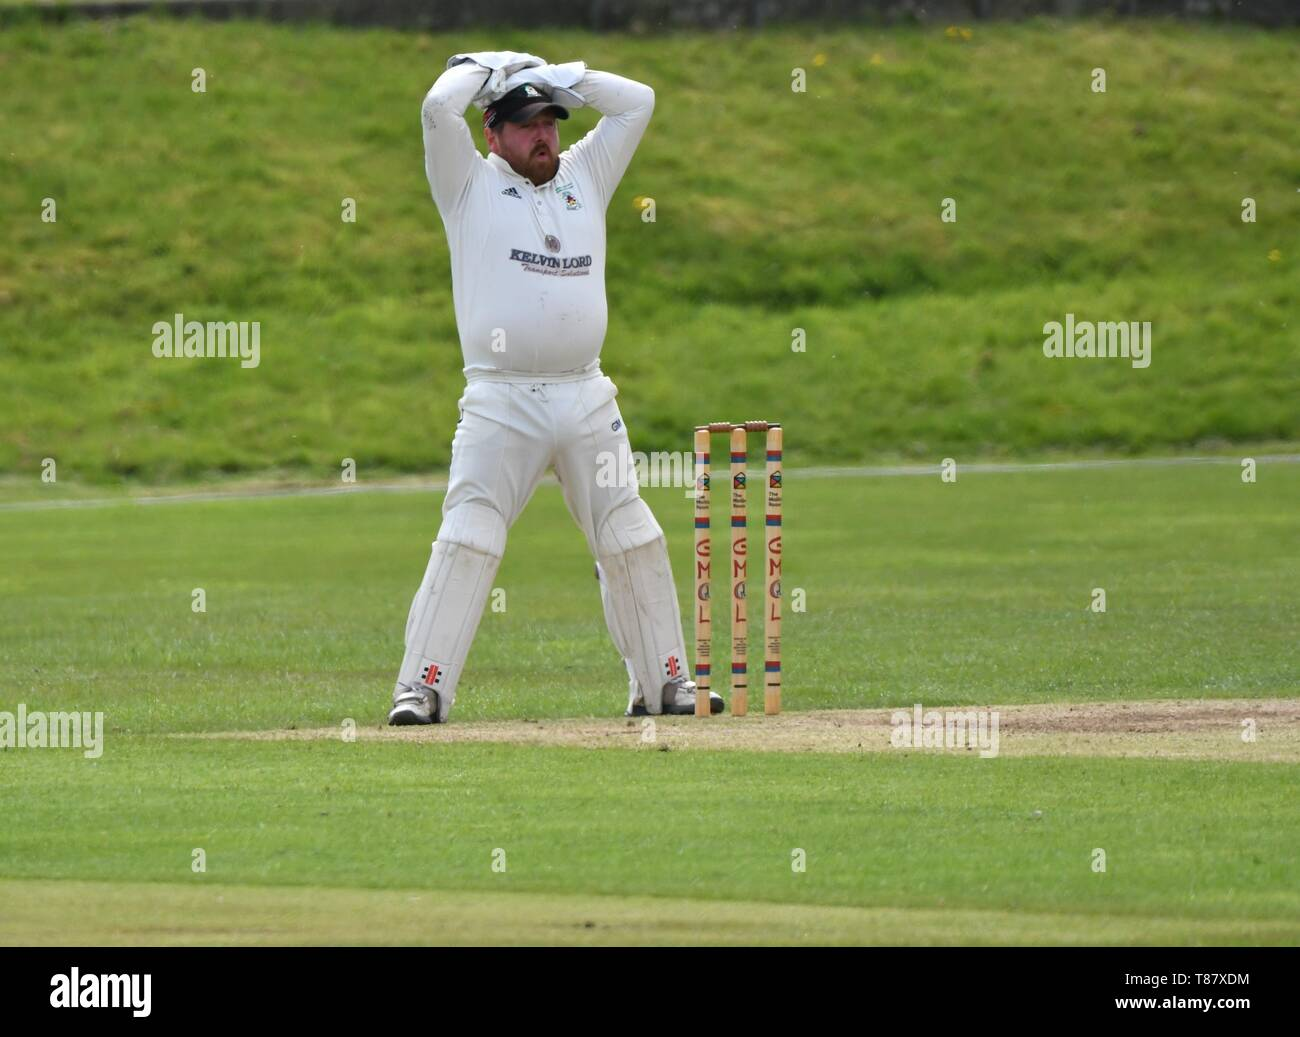 Wicket keeper shows his disbelief  in the match between Glossop and Moorside. - Stock Image